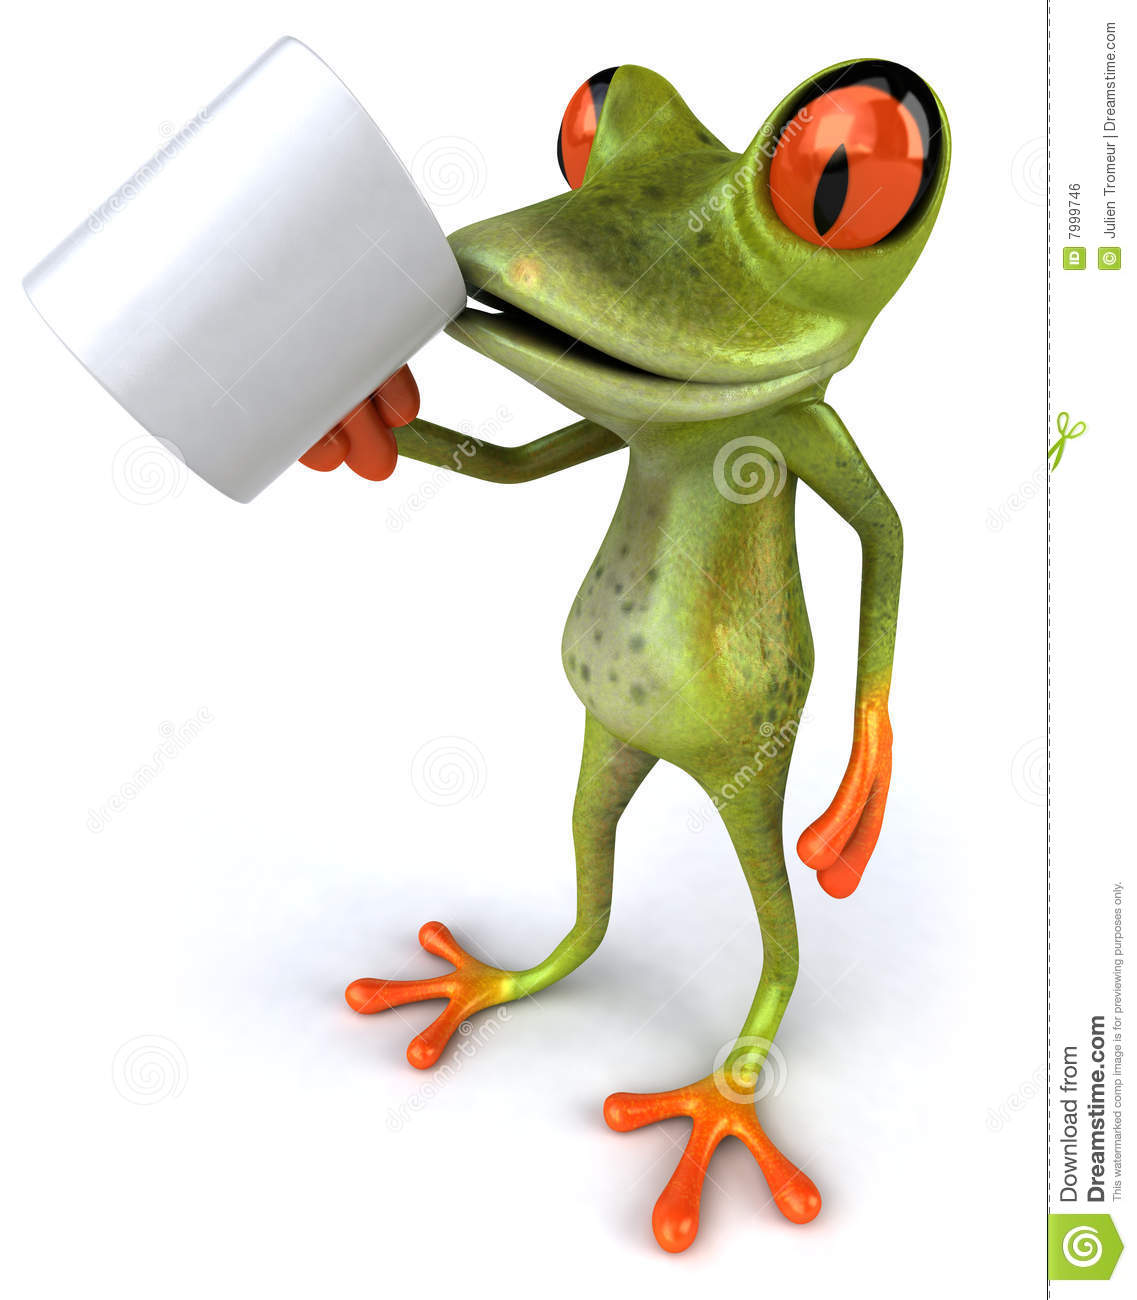 Frog With A Coffee Mug Royalty Free Stock Image - Image: 7999746